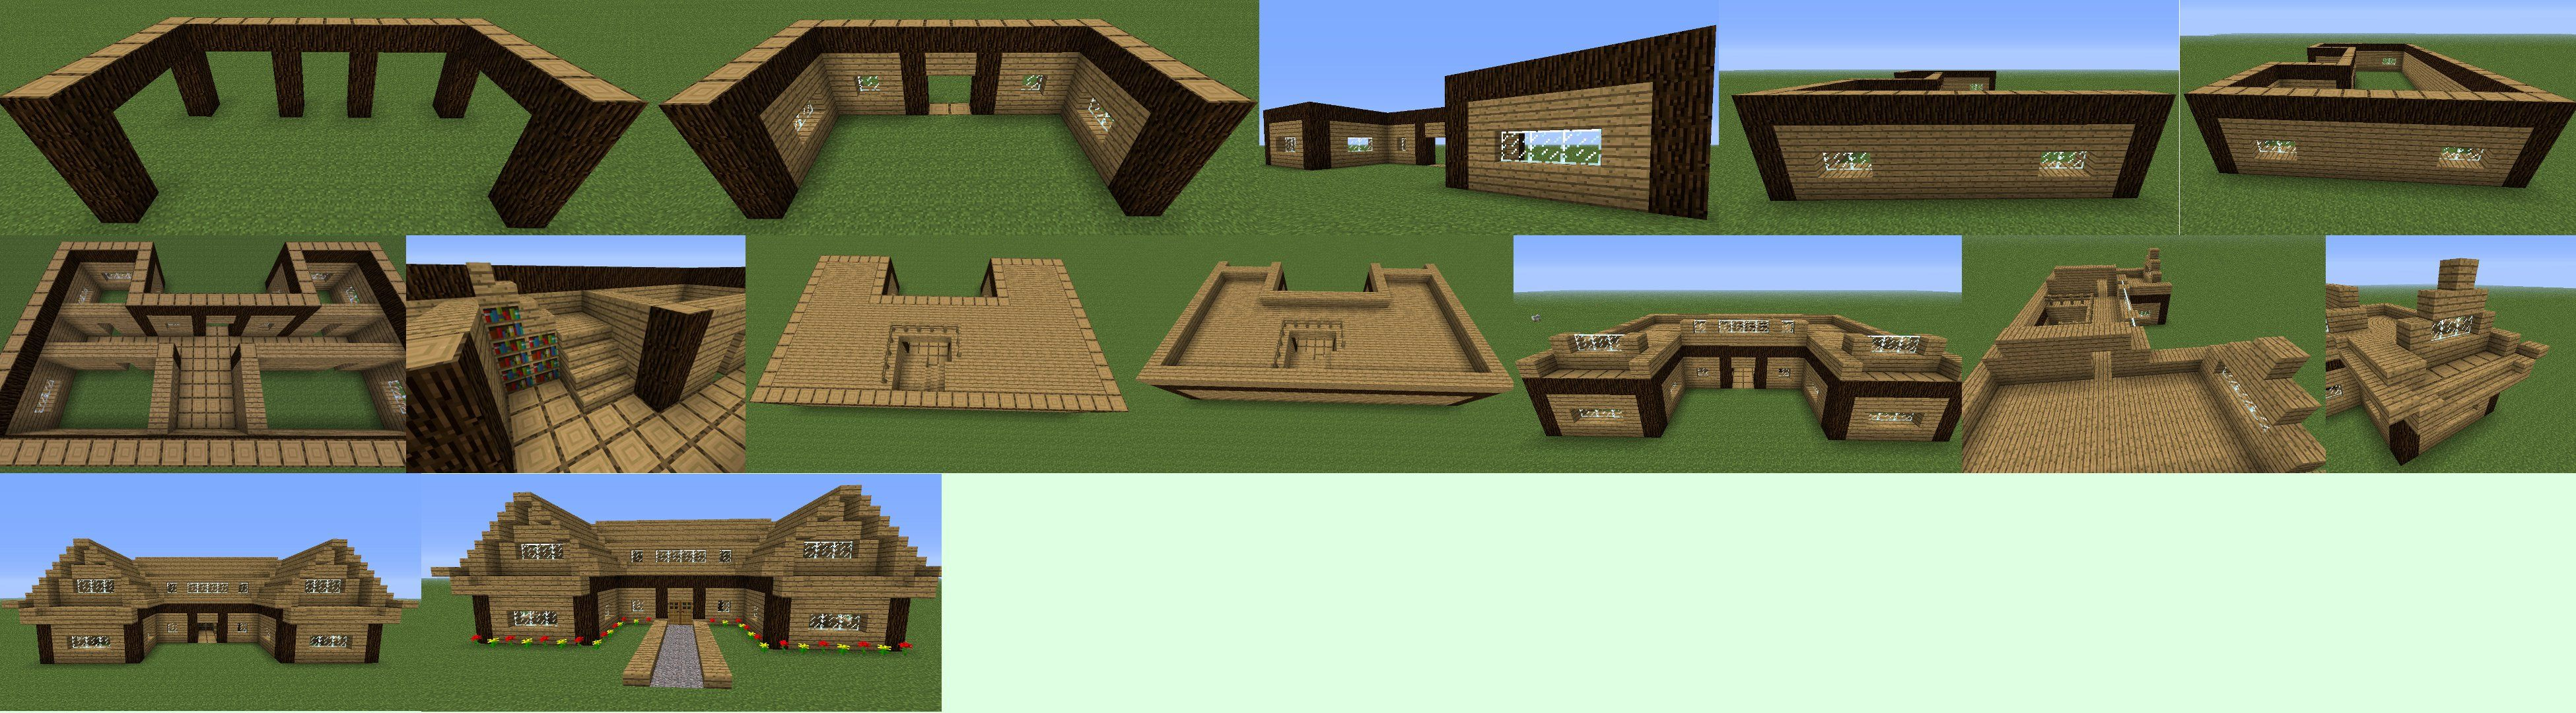 Minecraft Houses Step By Step Google Search Minecraft House